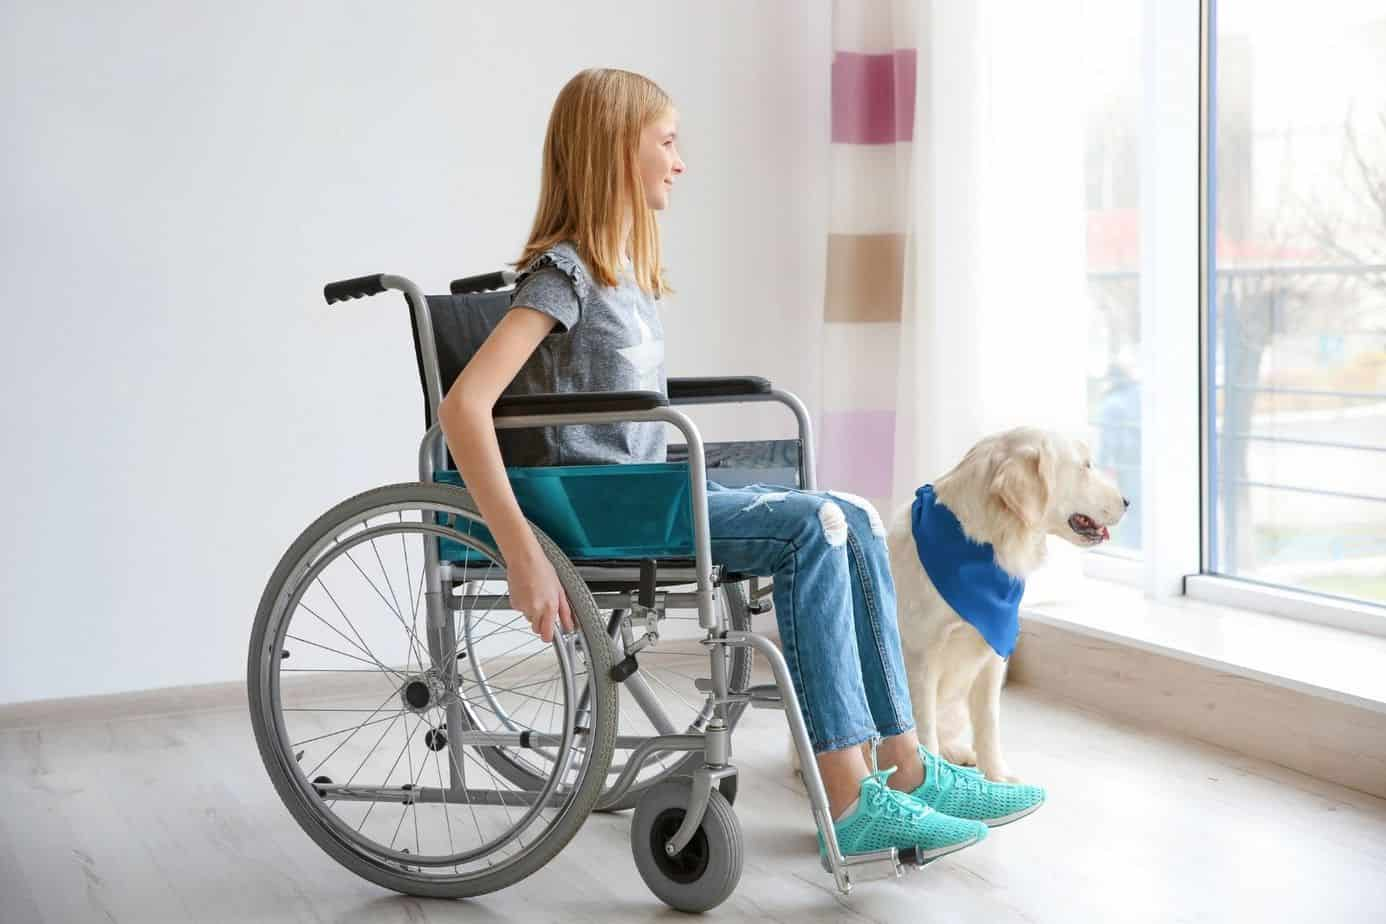 teenager kid in a wheelchair with her white dog